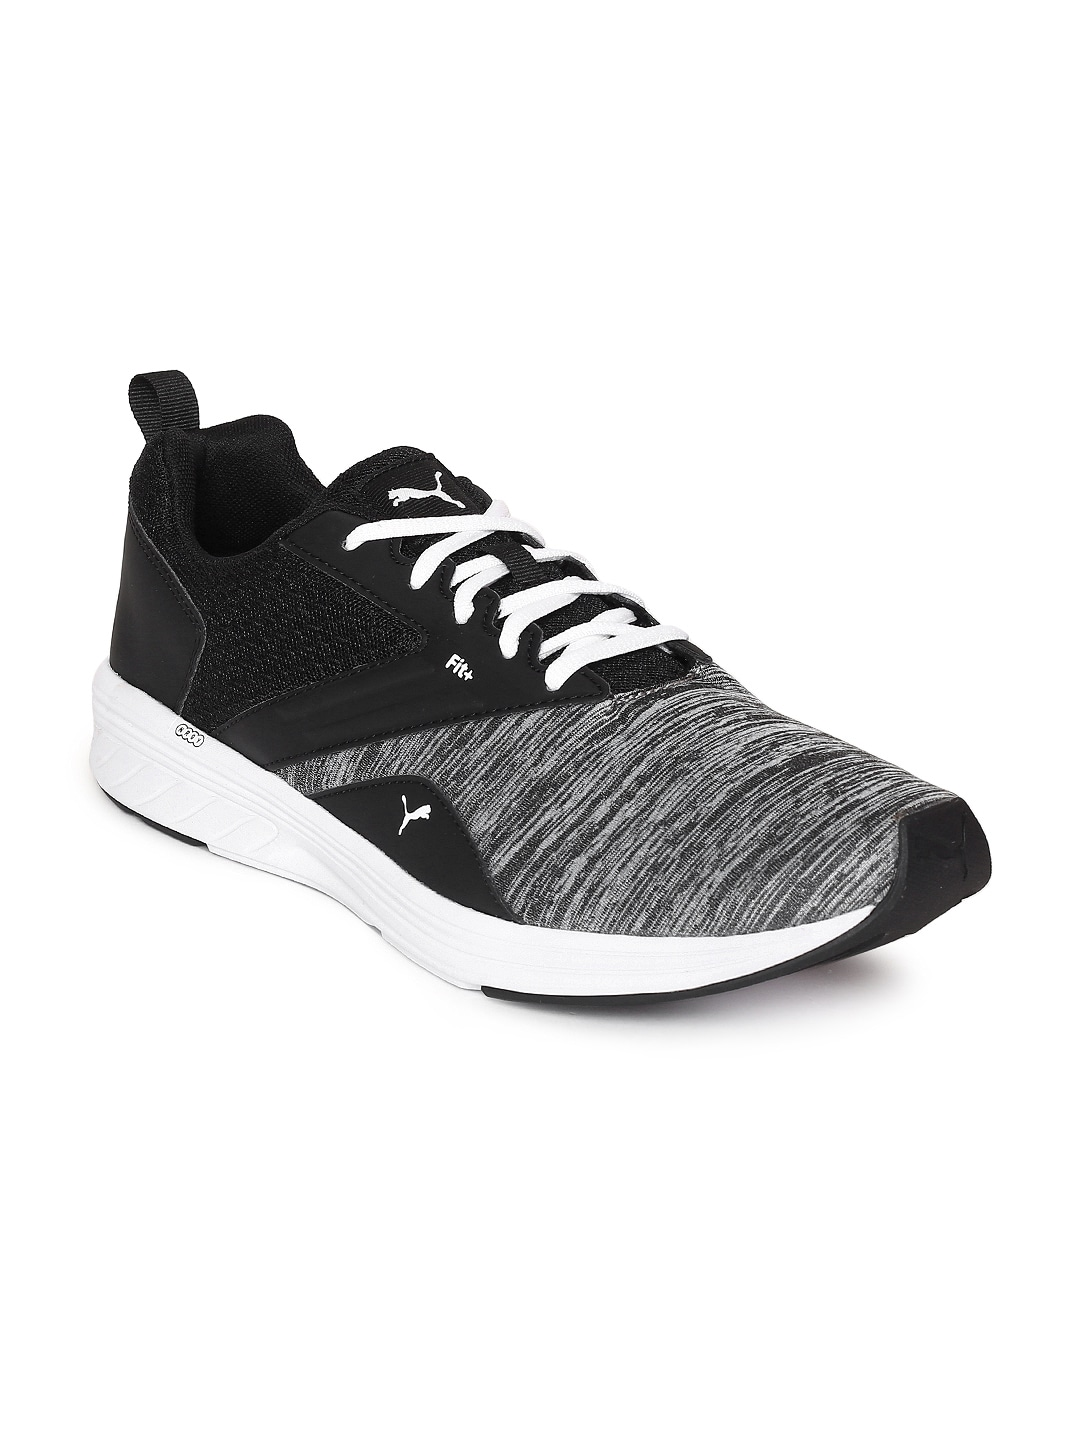 5ad4afcb302067 Buy Puma Unisex Charcoal Grey   Black Wired Knit Training Shoes ...